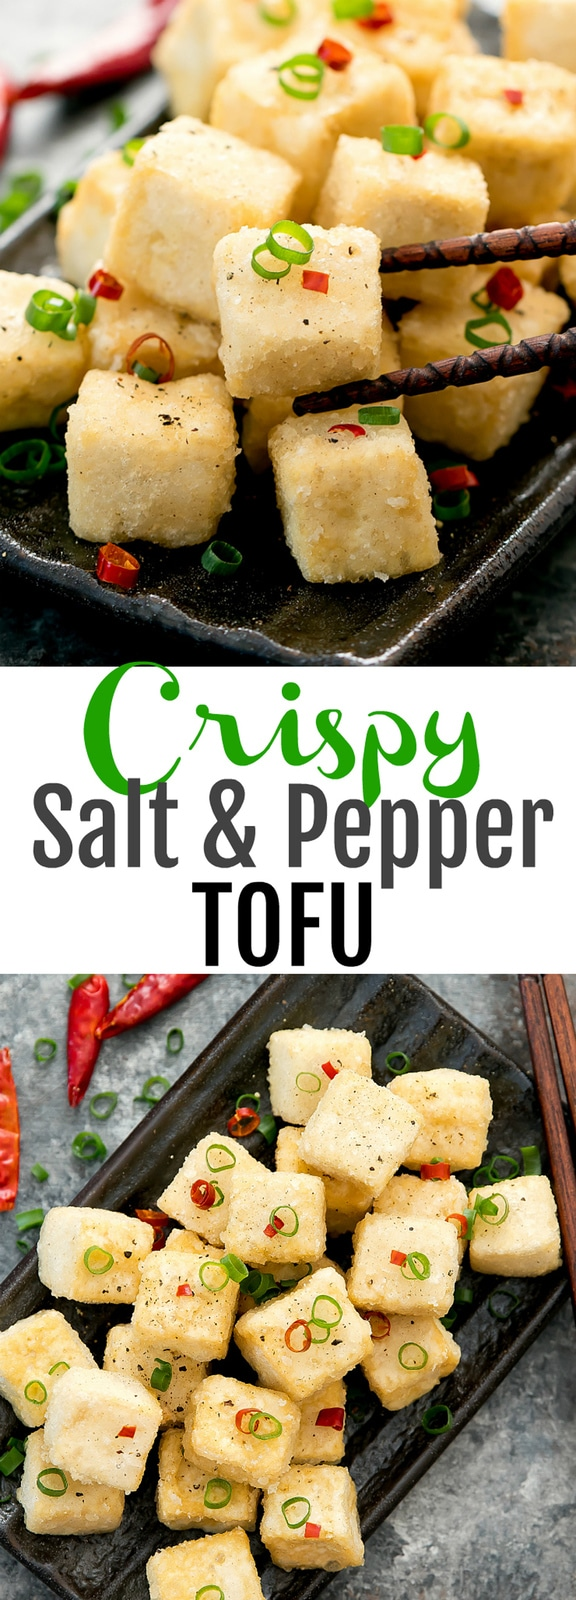 Crispy Salt and Pepper Tofu. A popular Chinese dish that can be easily made at home. The tofu has a super crispy exterior and a soft, silky center.